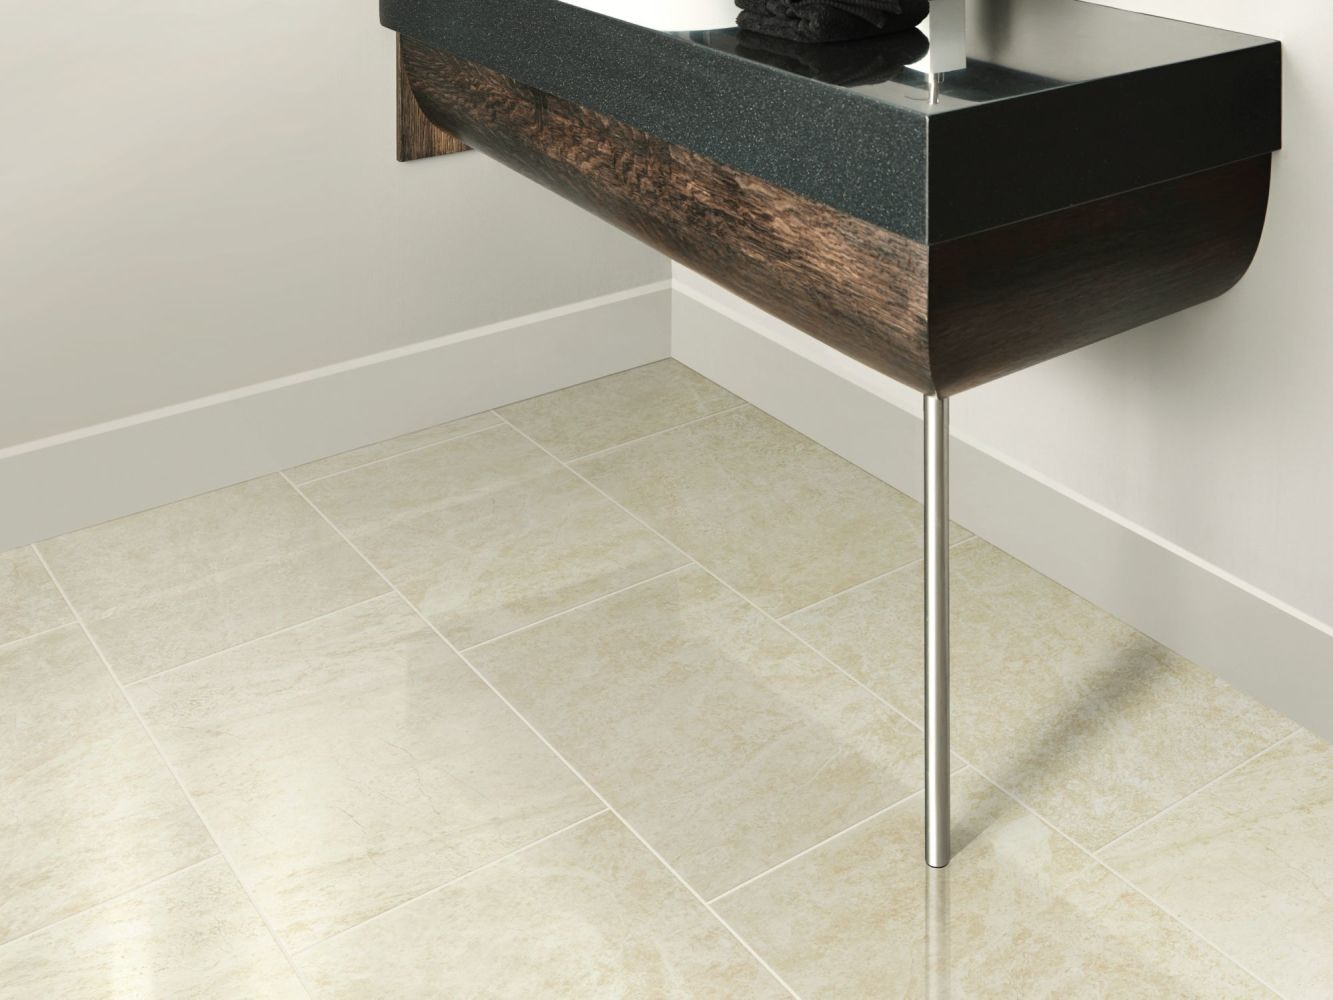 Shaw Floors Ceramic Solutions Range 16×32 Allure 00200_CS35W